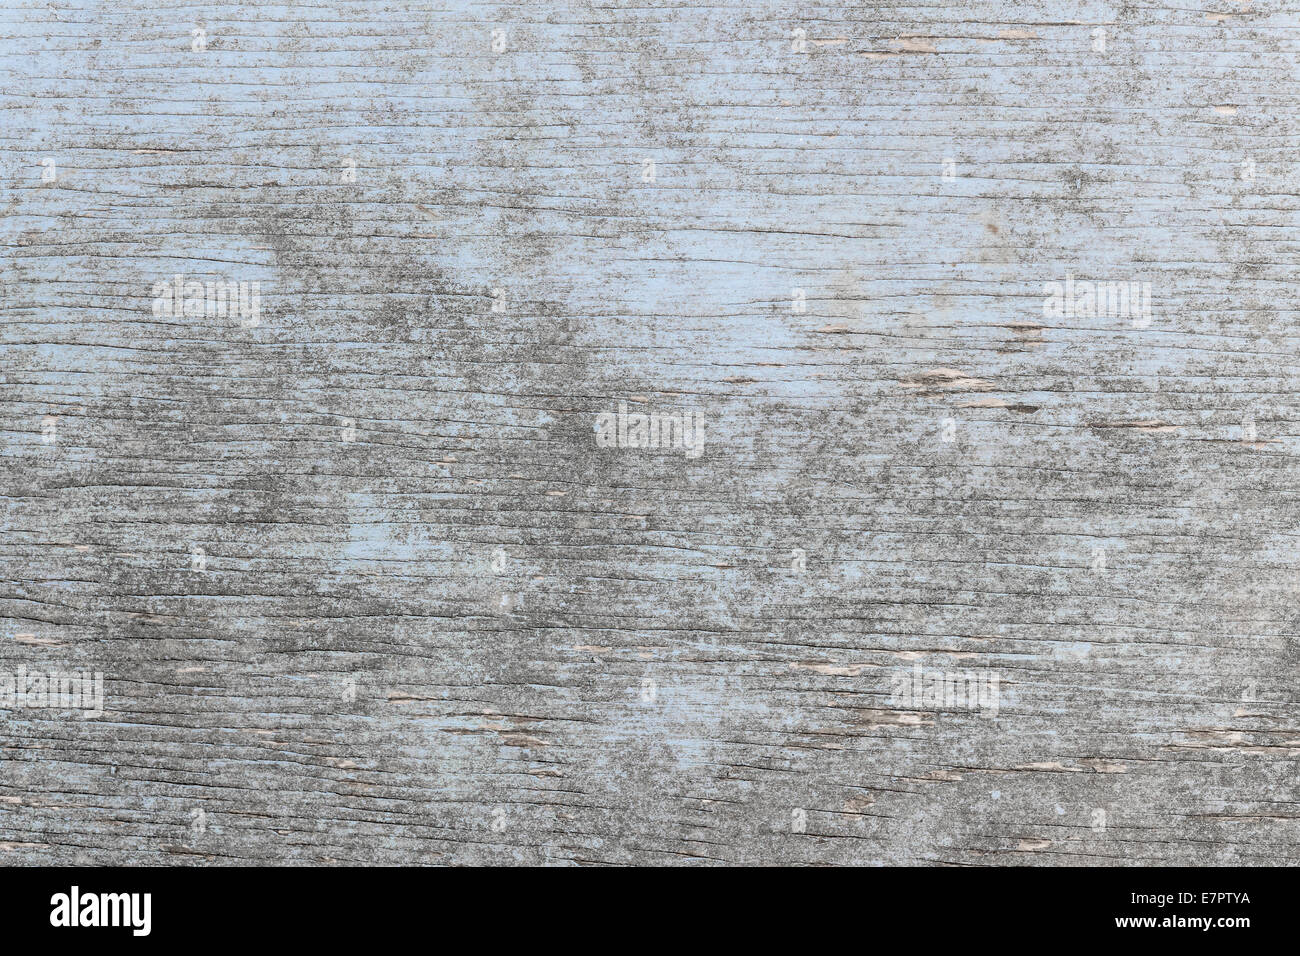 Aged wooden background of weathered distressed rustic wood with faded light blue paint showing woodgrain texture - Stock Image